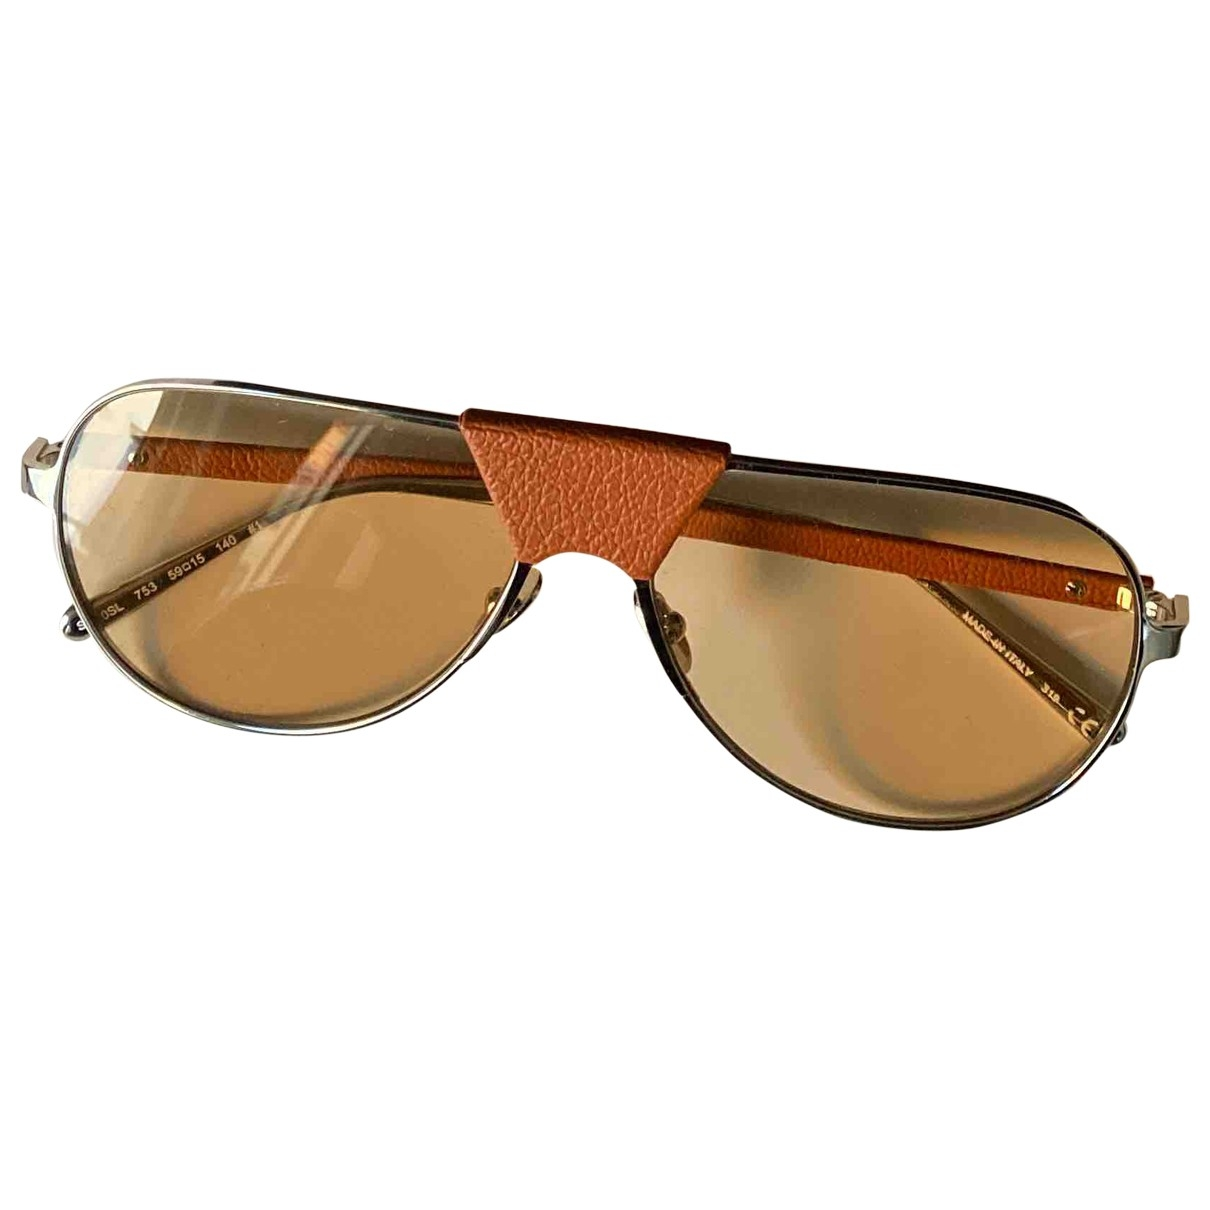 Salvatore Ferragamo \N Gold Metal Sunglasses for Men \N